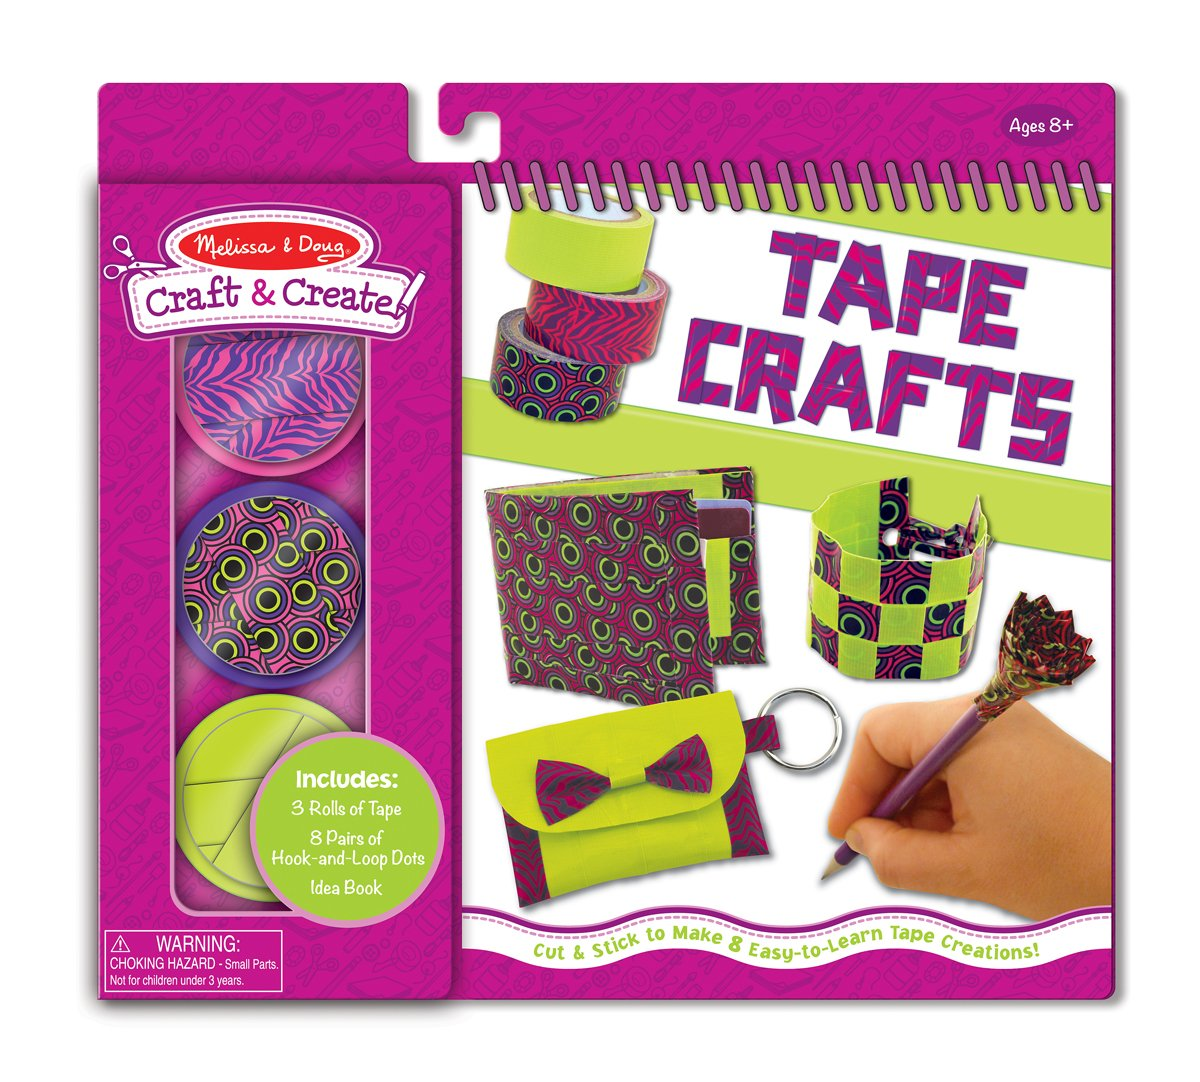 Tape Crafts